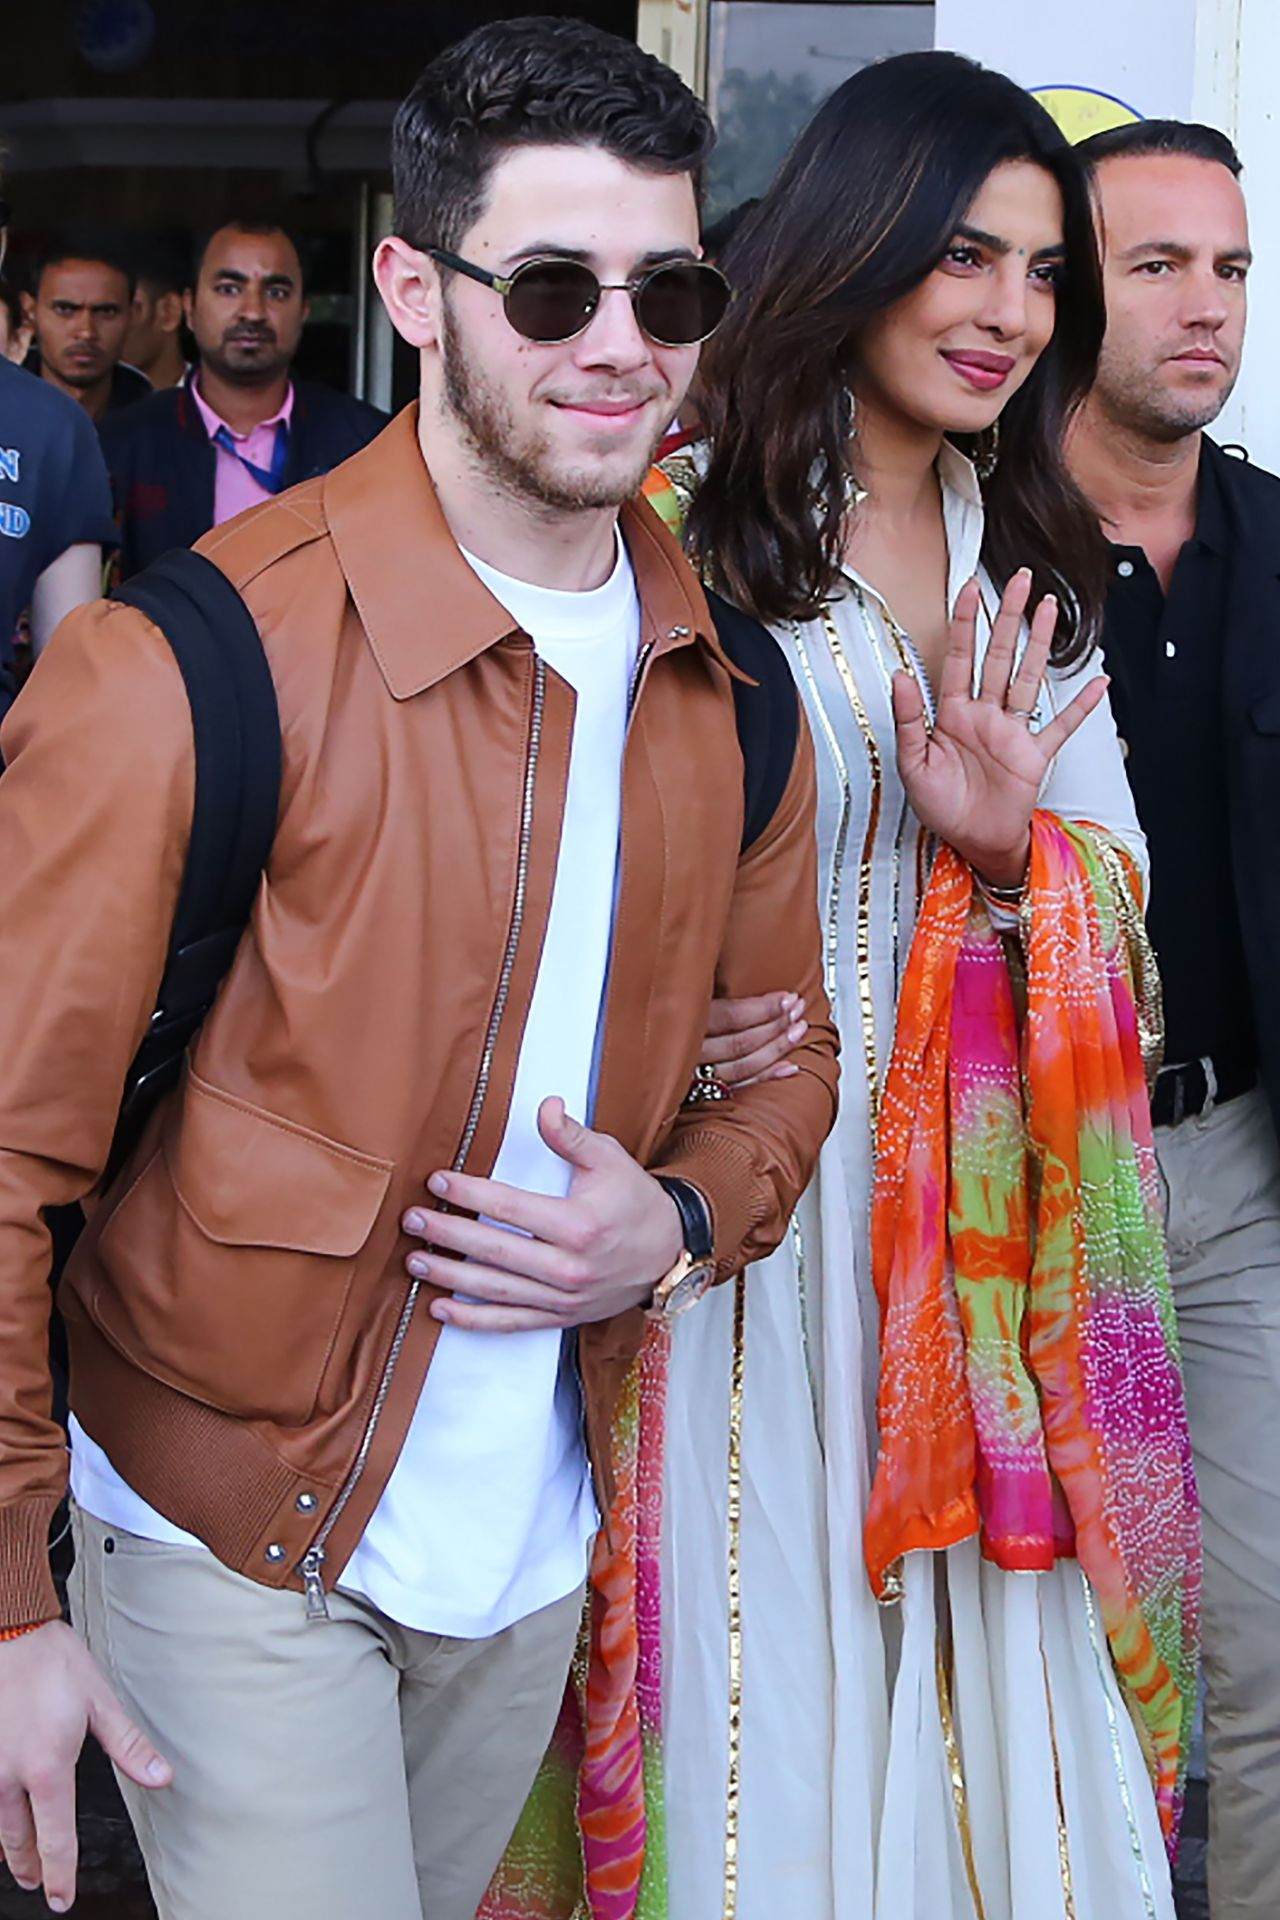 Nick Jonas and Priyanka Chopra arriving in Jodhpur for the range of traditional Indian wedding ceremonies to come. Image credit: AFP